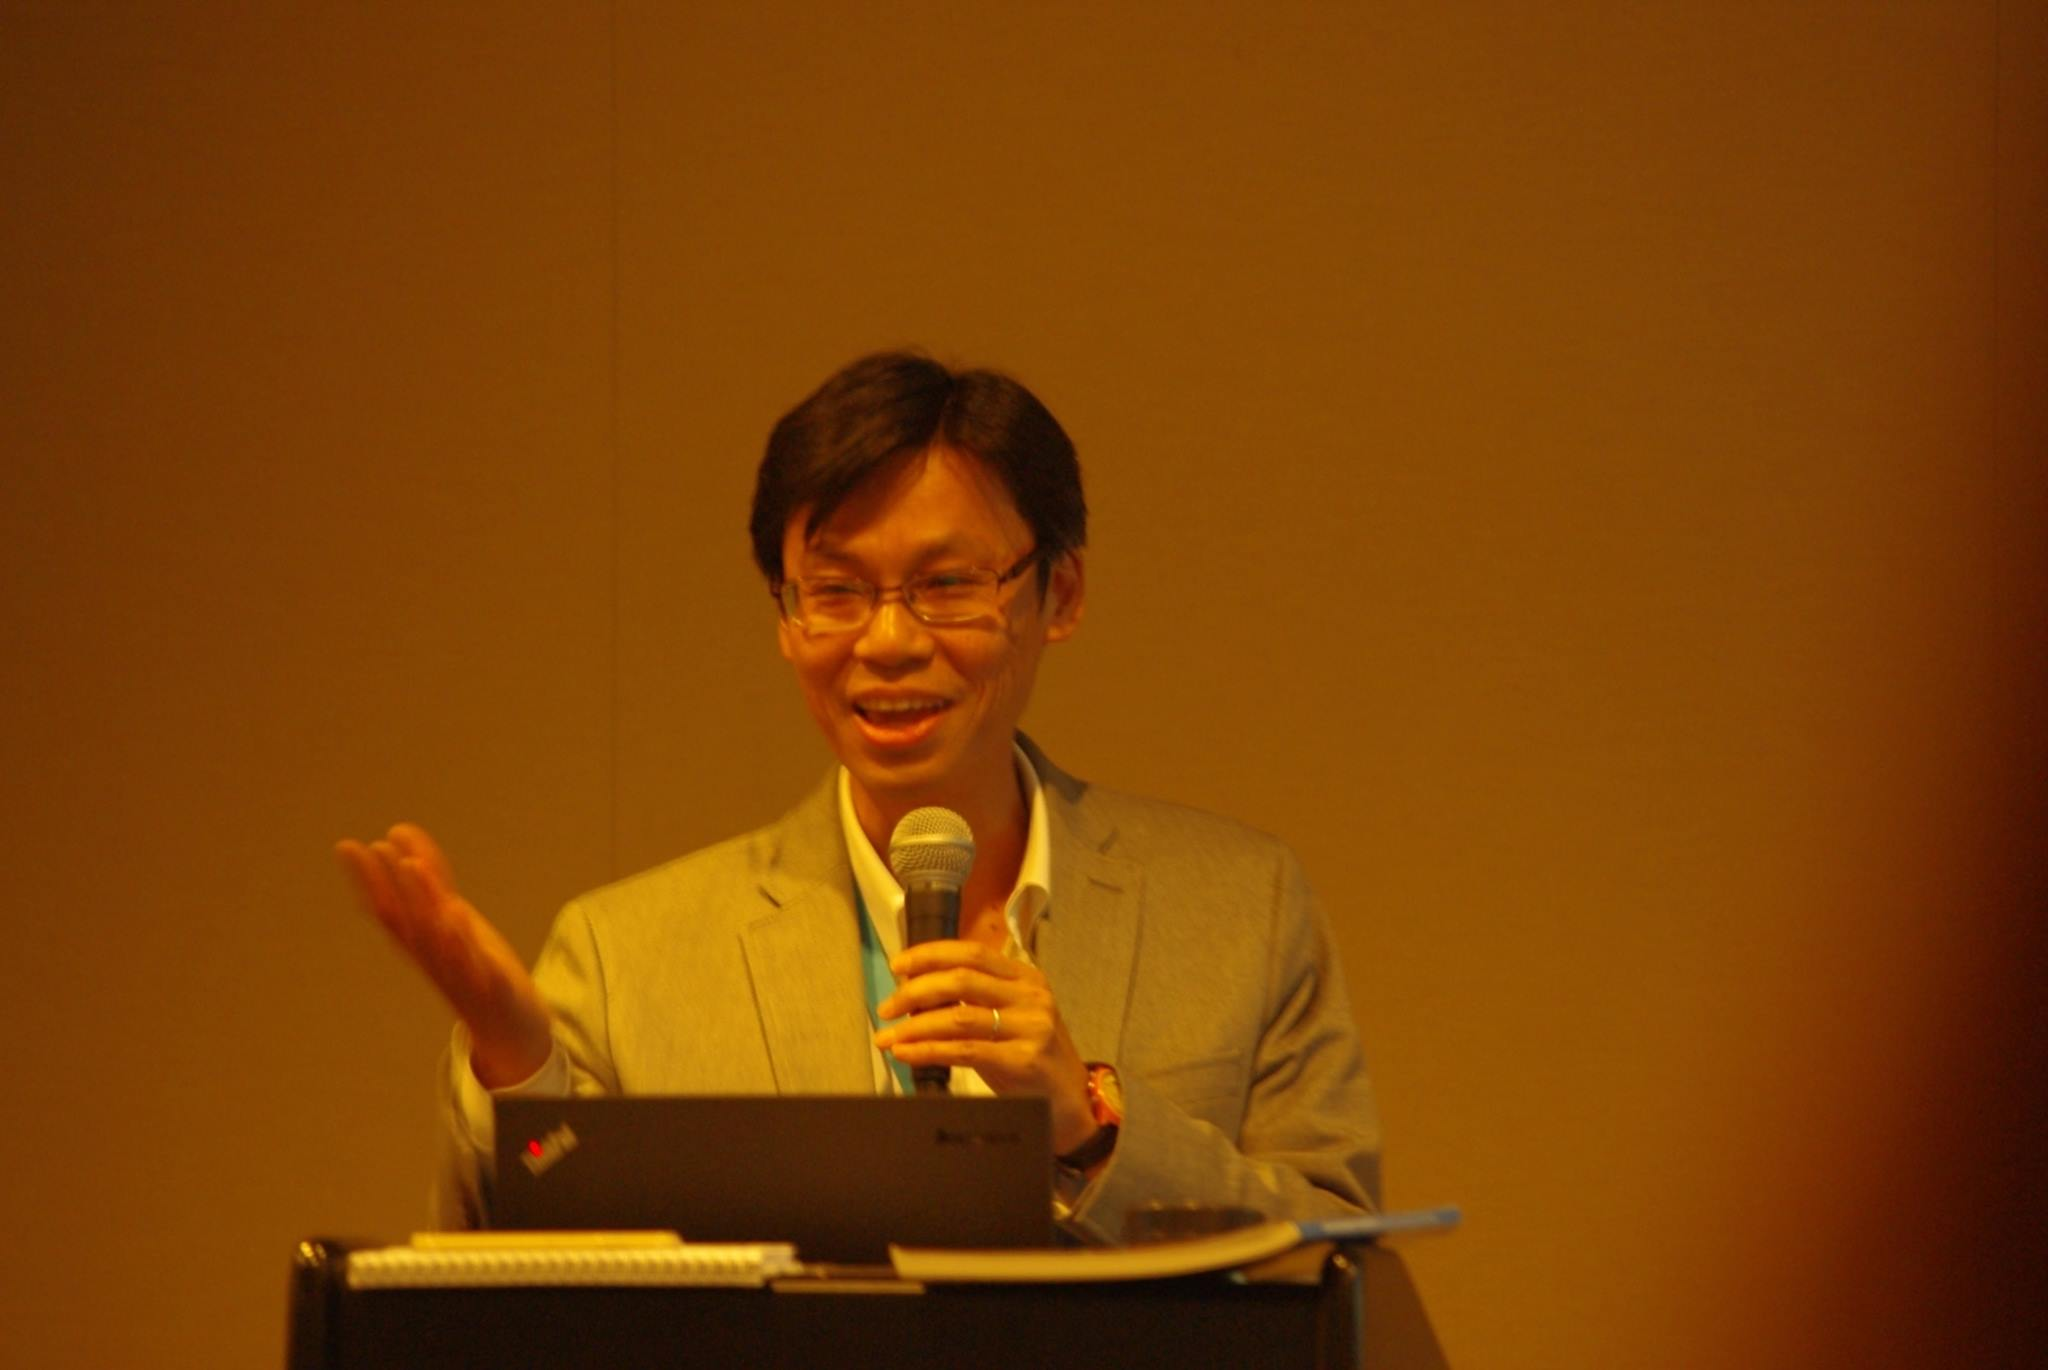 Hiro Hattori, from the Data & Analytics section at UNICEF, presented research on the Out of School Children Initiative.